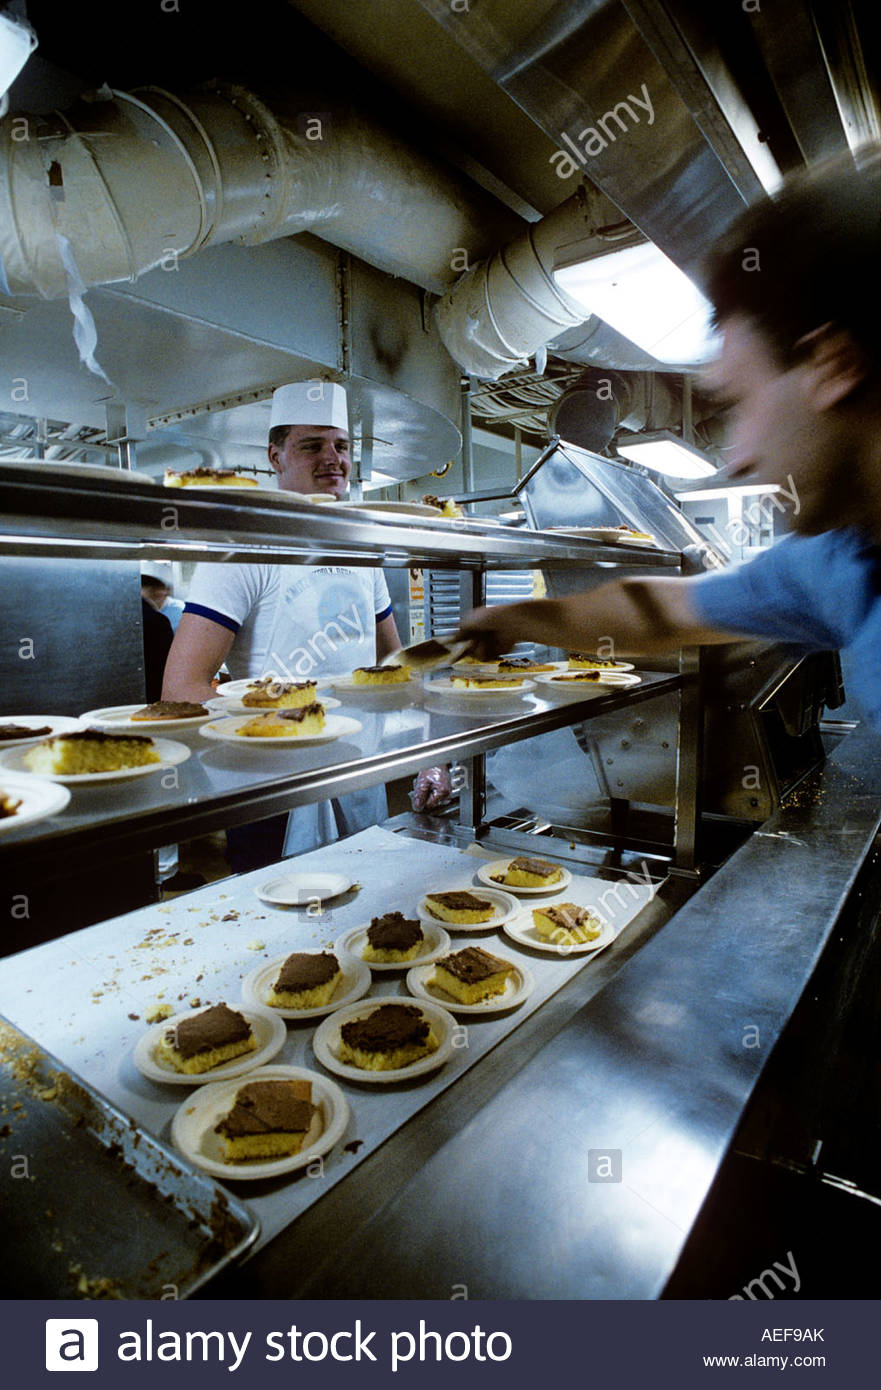 Would you like some cake sir? Yellow cake with Chocolate frosting in the  Mess Hall of the USS Nimitz Aircraft carrier - Stock Image